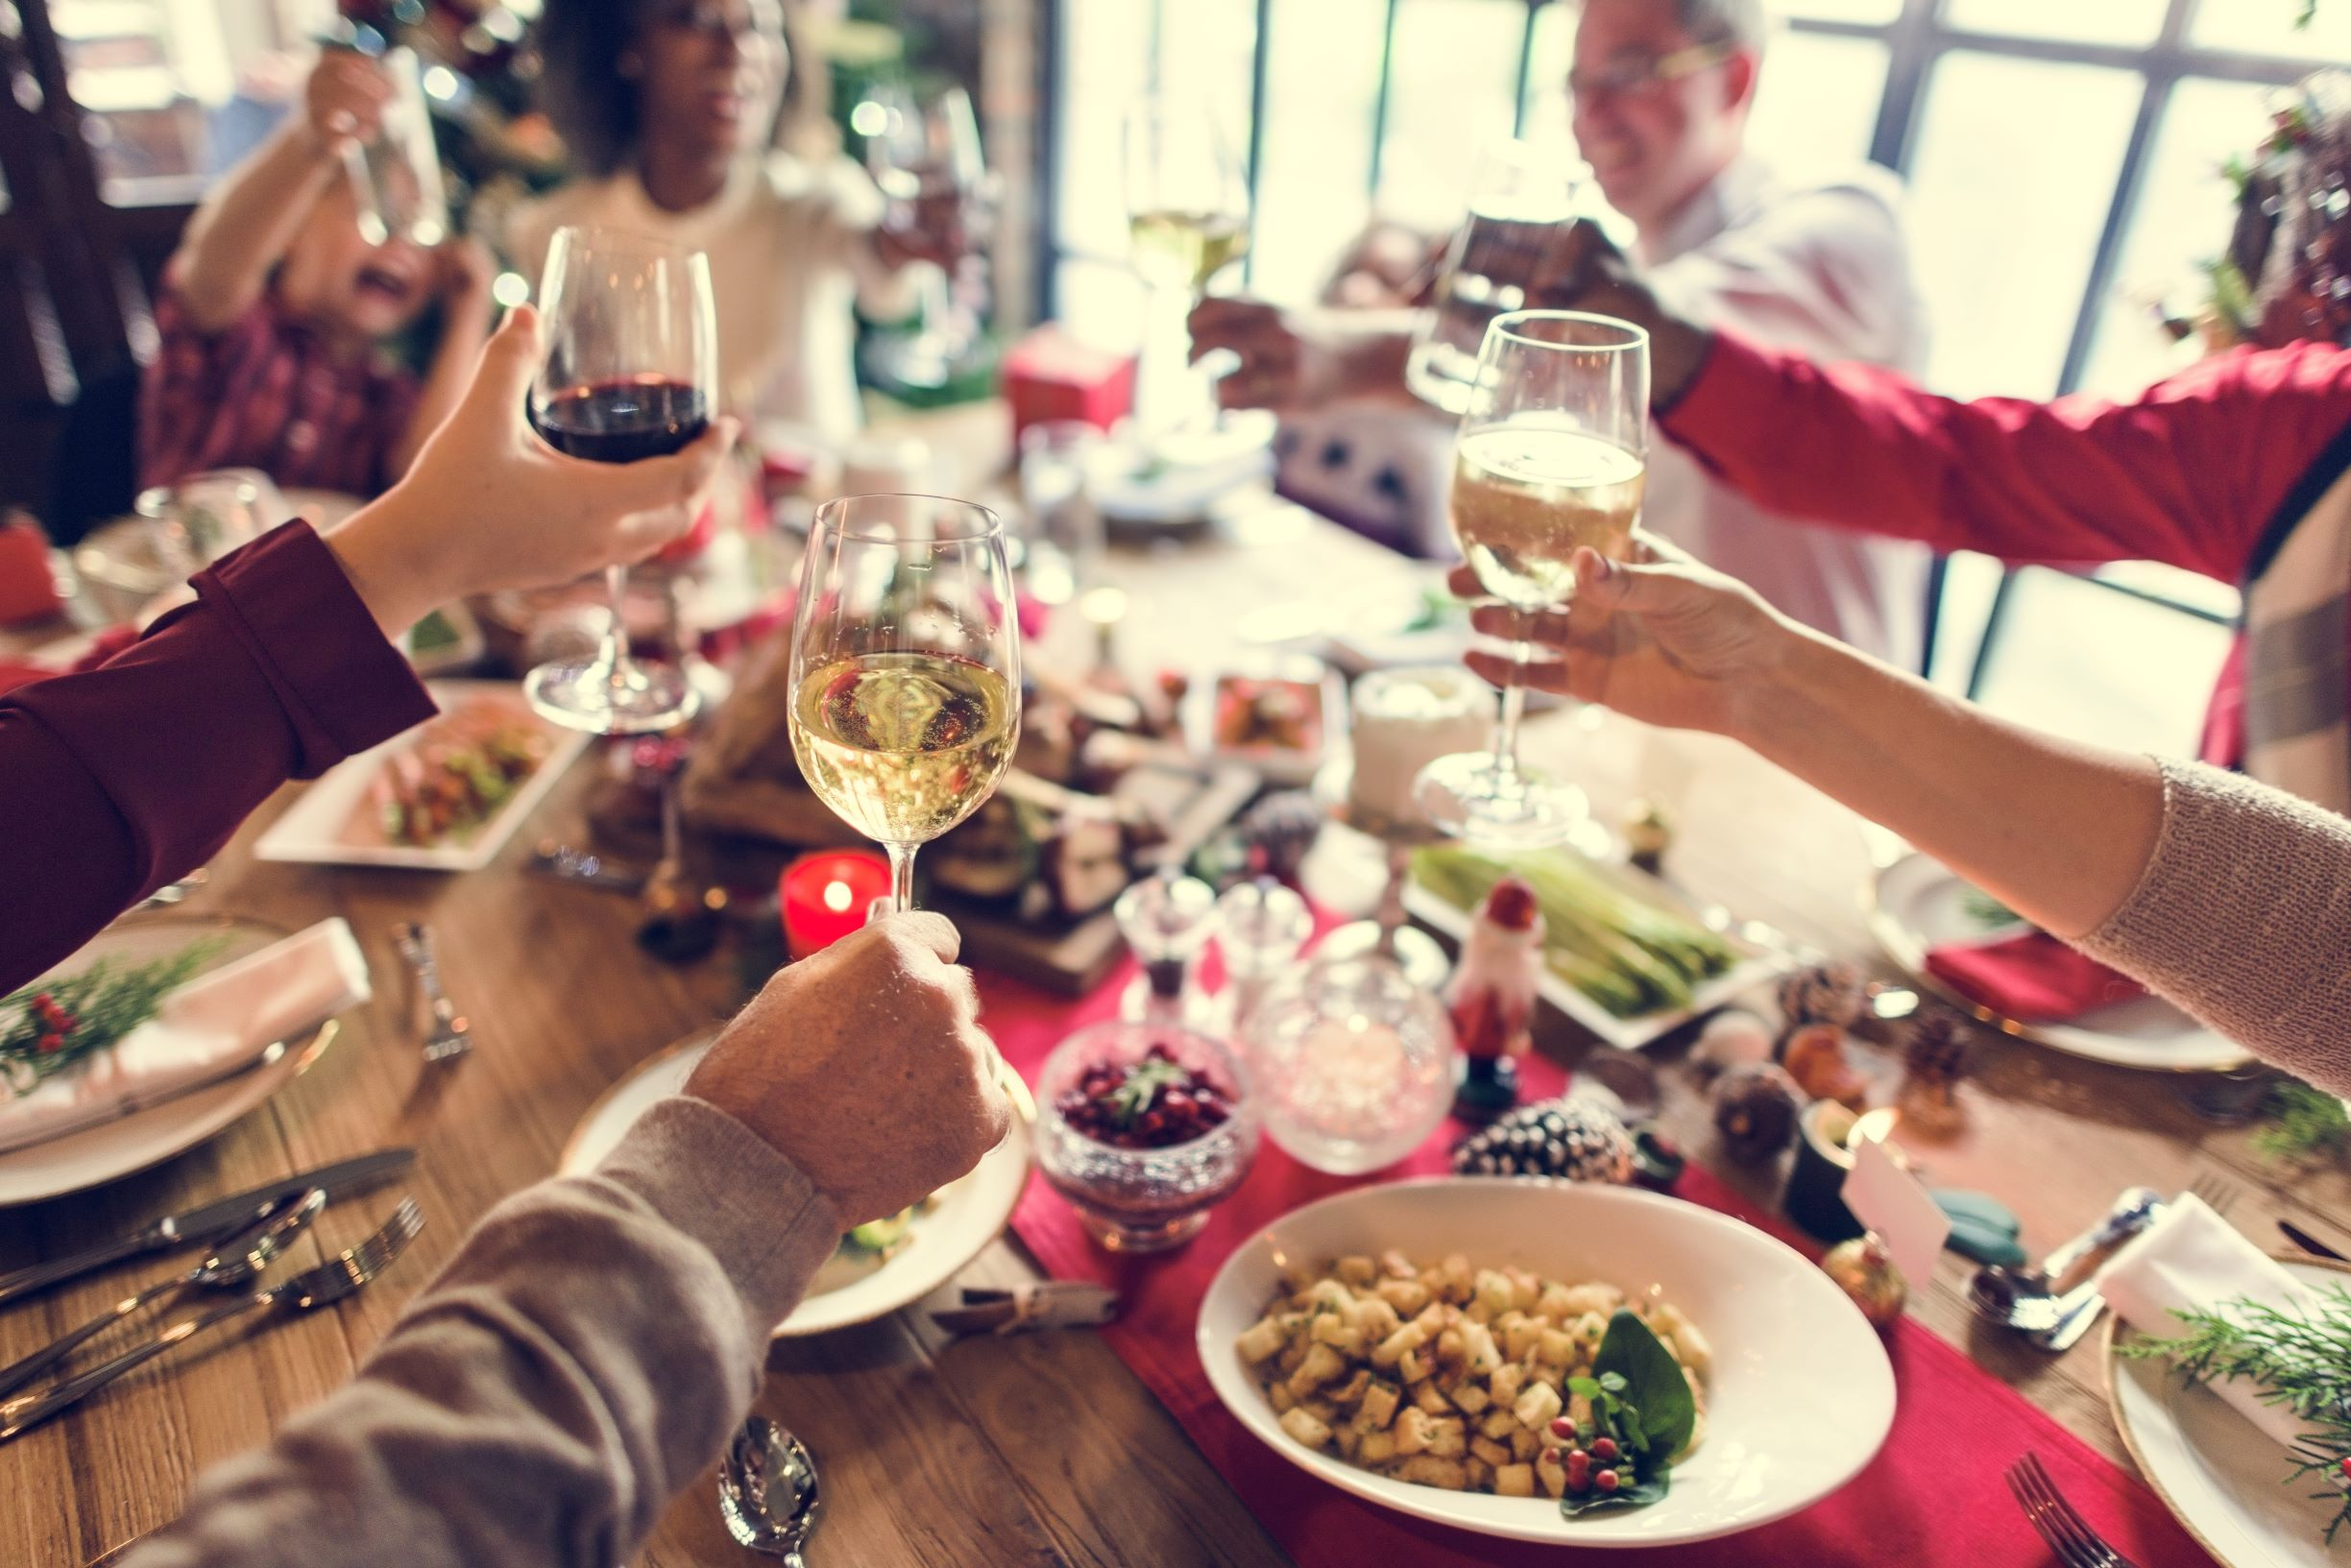 An intimate gathering over a beautifully setup Christmas table.